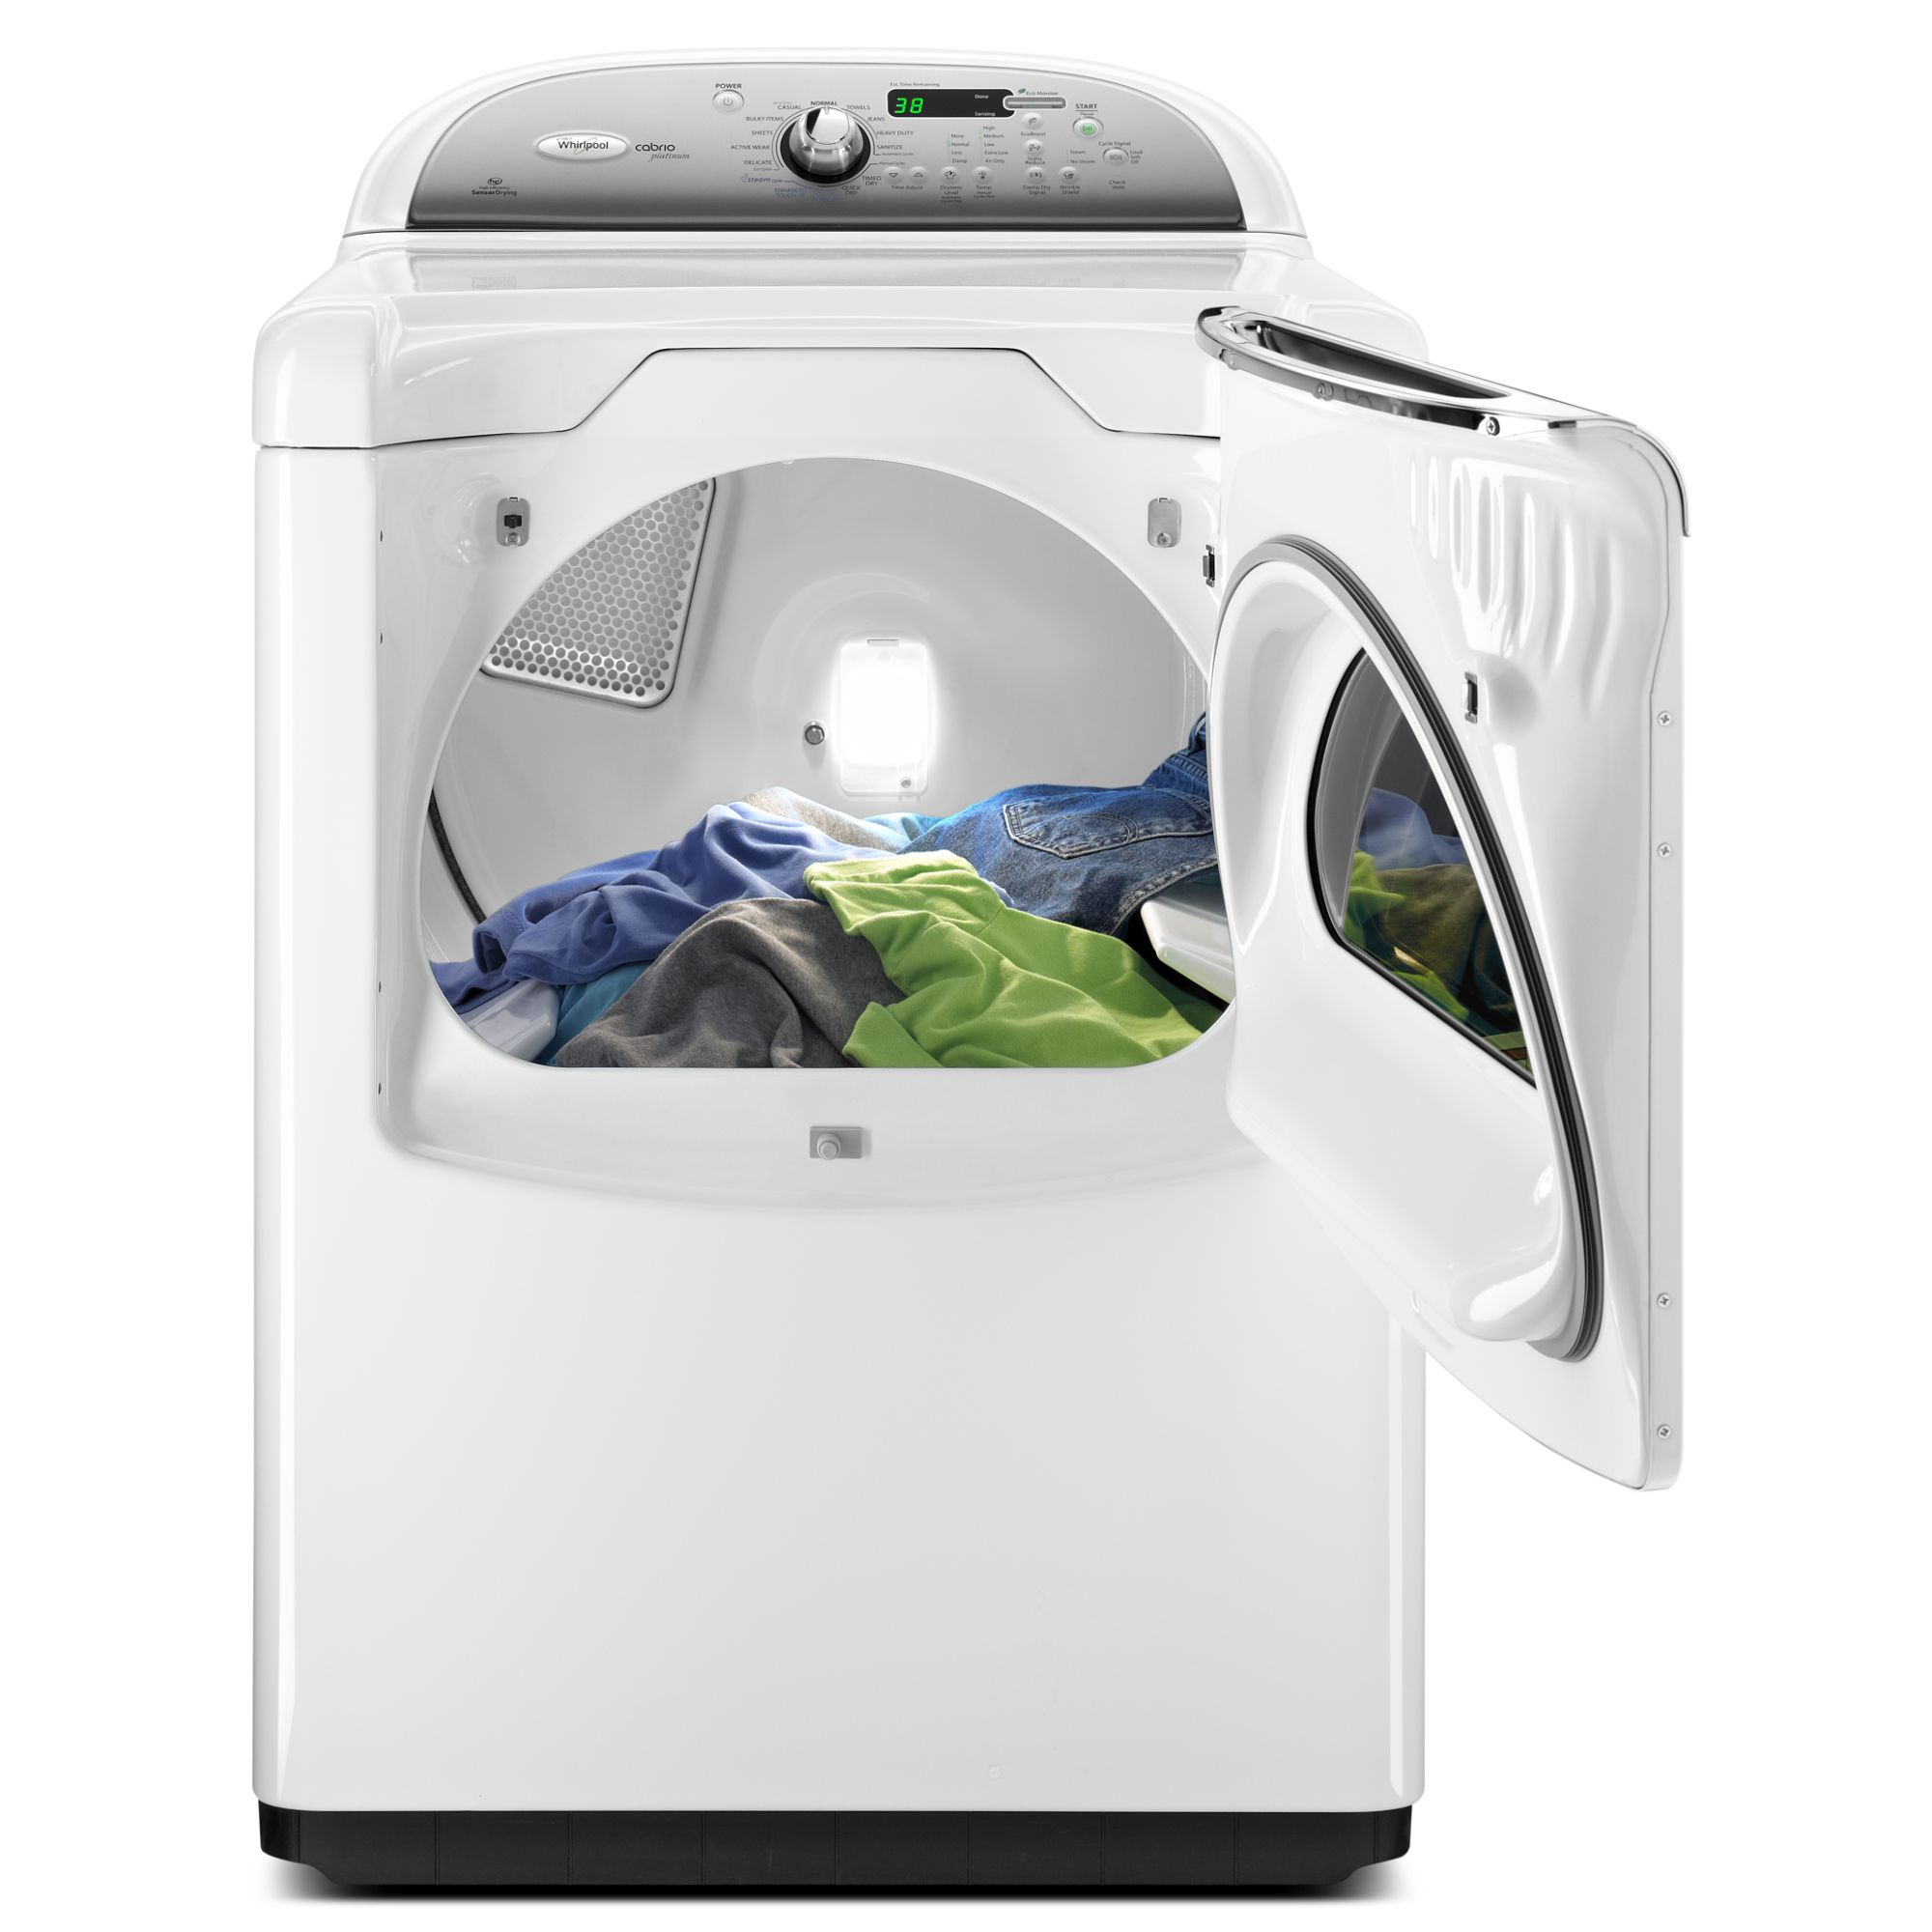 Whirlpool 7.6 cu. ft. Cabrio® Platinum Steam Electric Dryer w/ Static Reduce - White